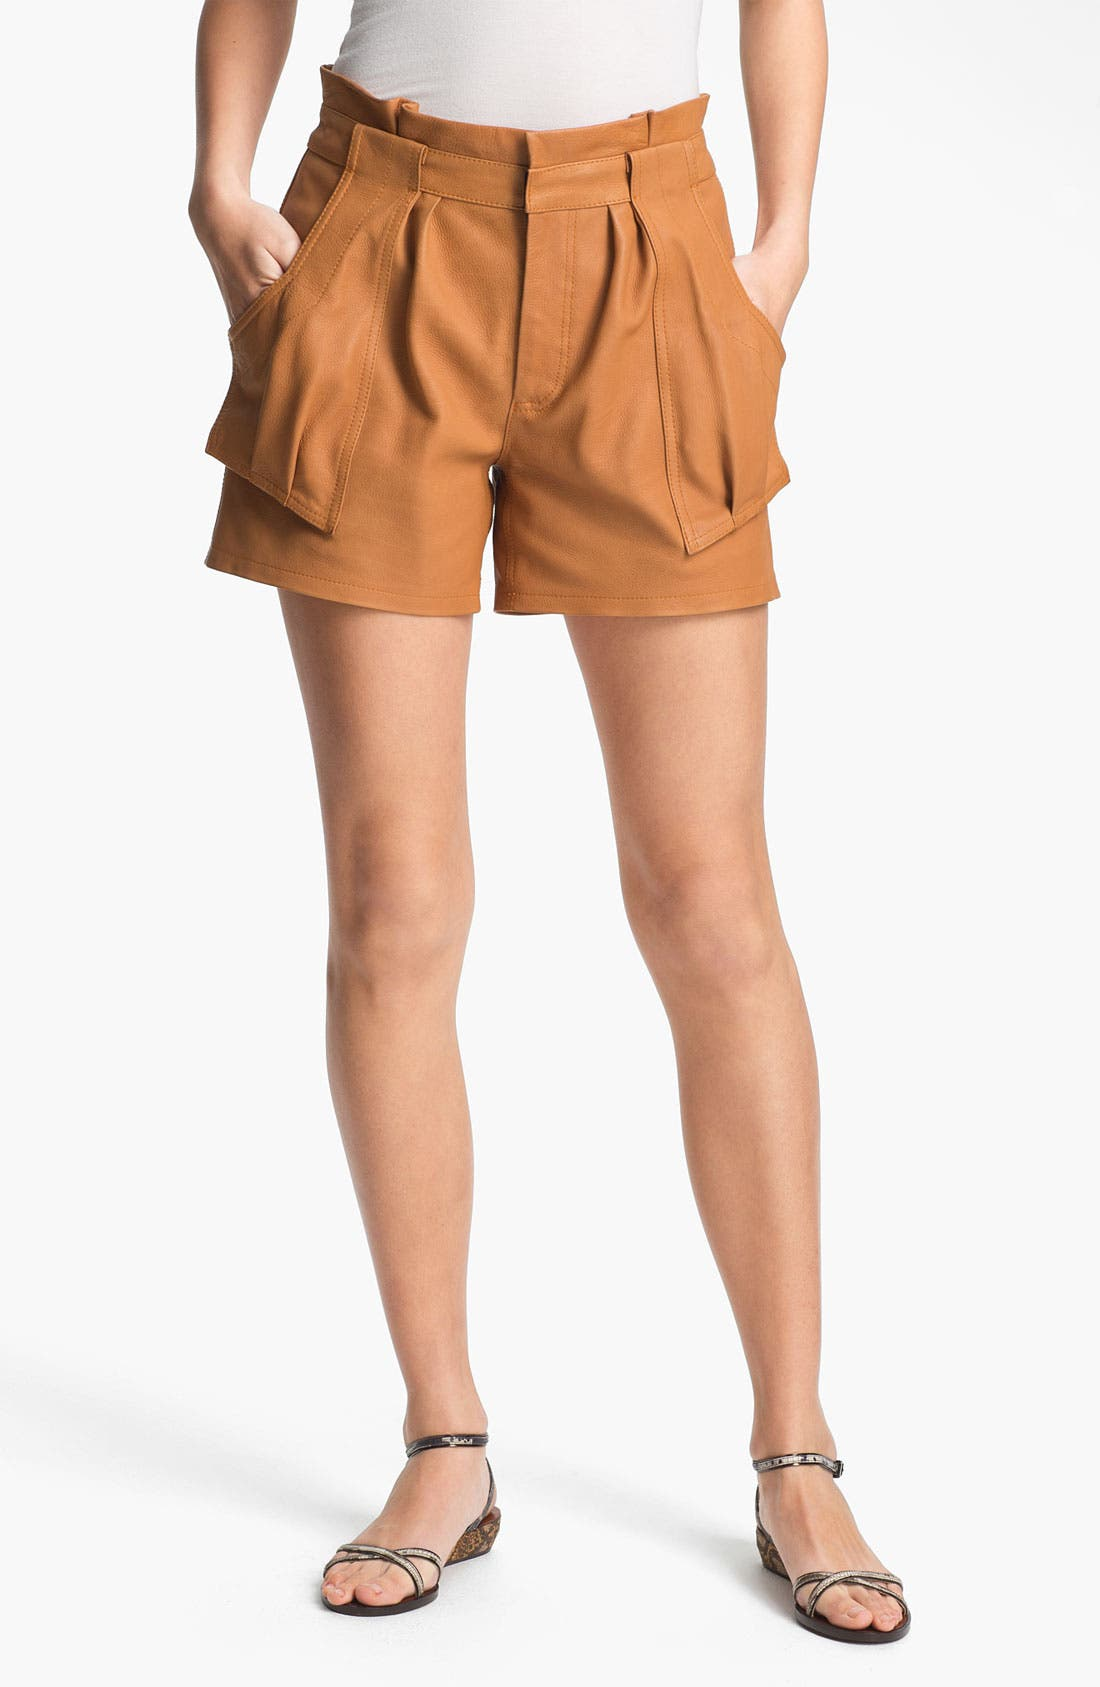 Alternate Image 1 Selected - A.L.C. 'Cash' Leather Shorts